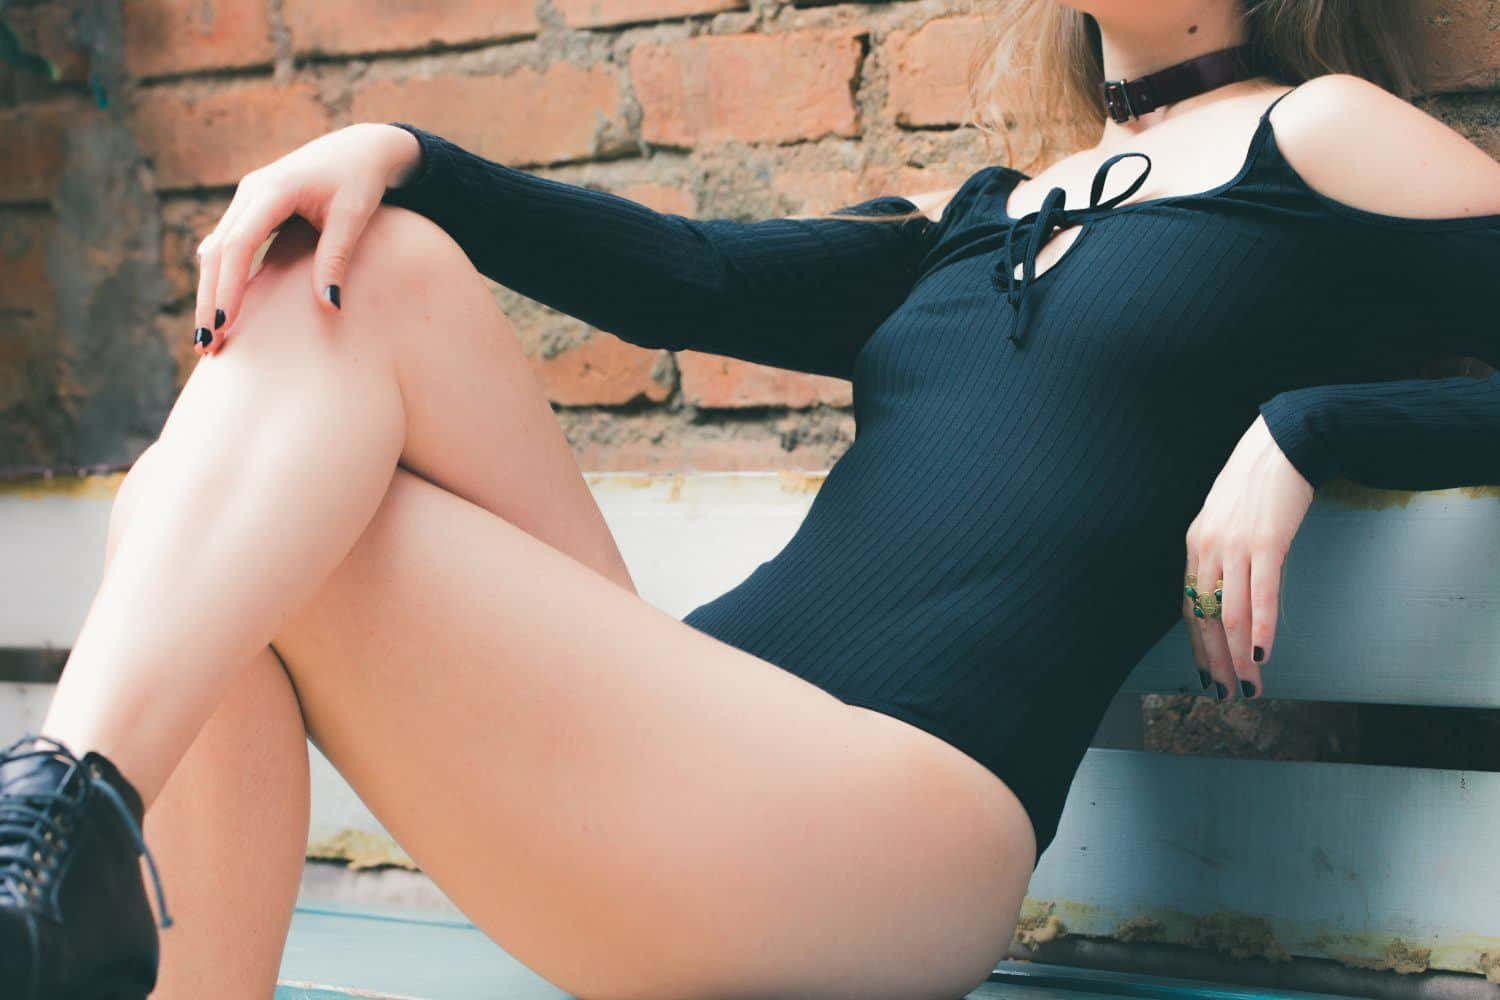 Woman in Black Leotards